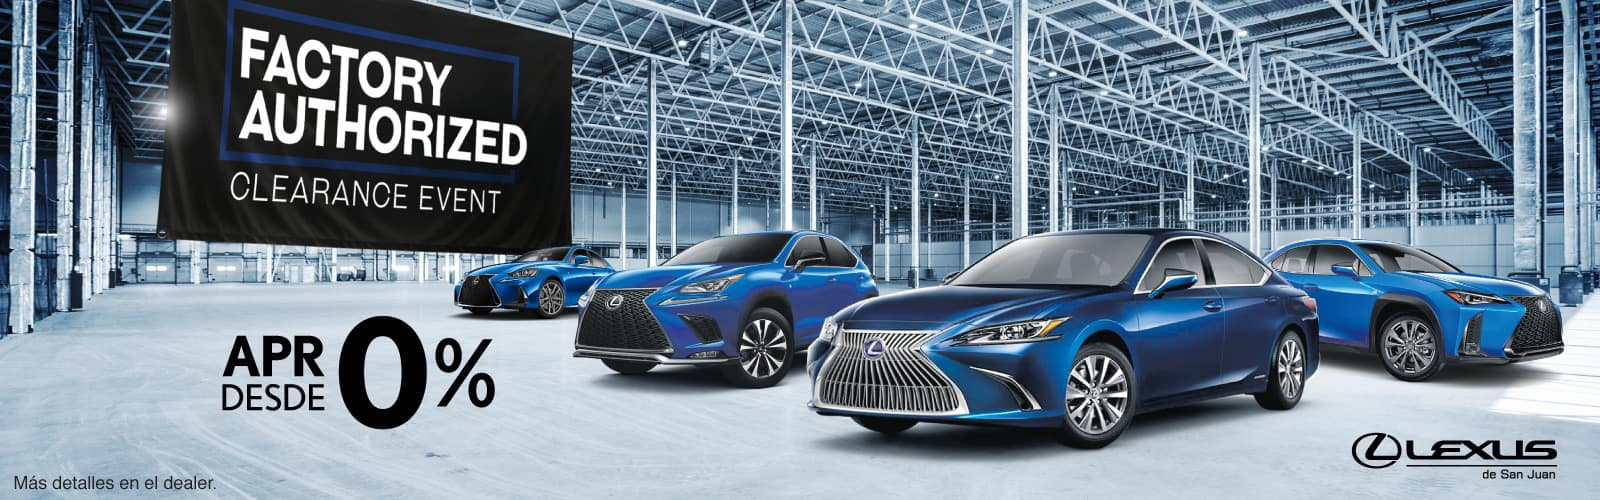 Lexus Authorized Clearance Event Octubre Web Banners 3